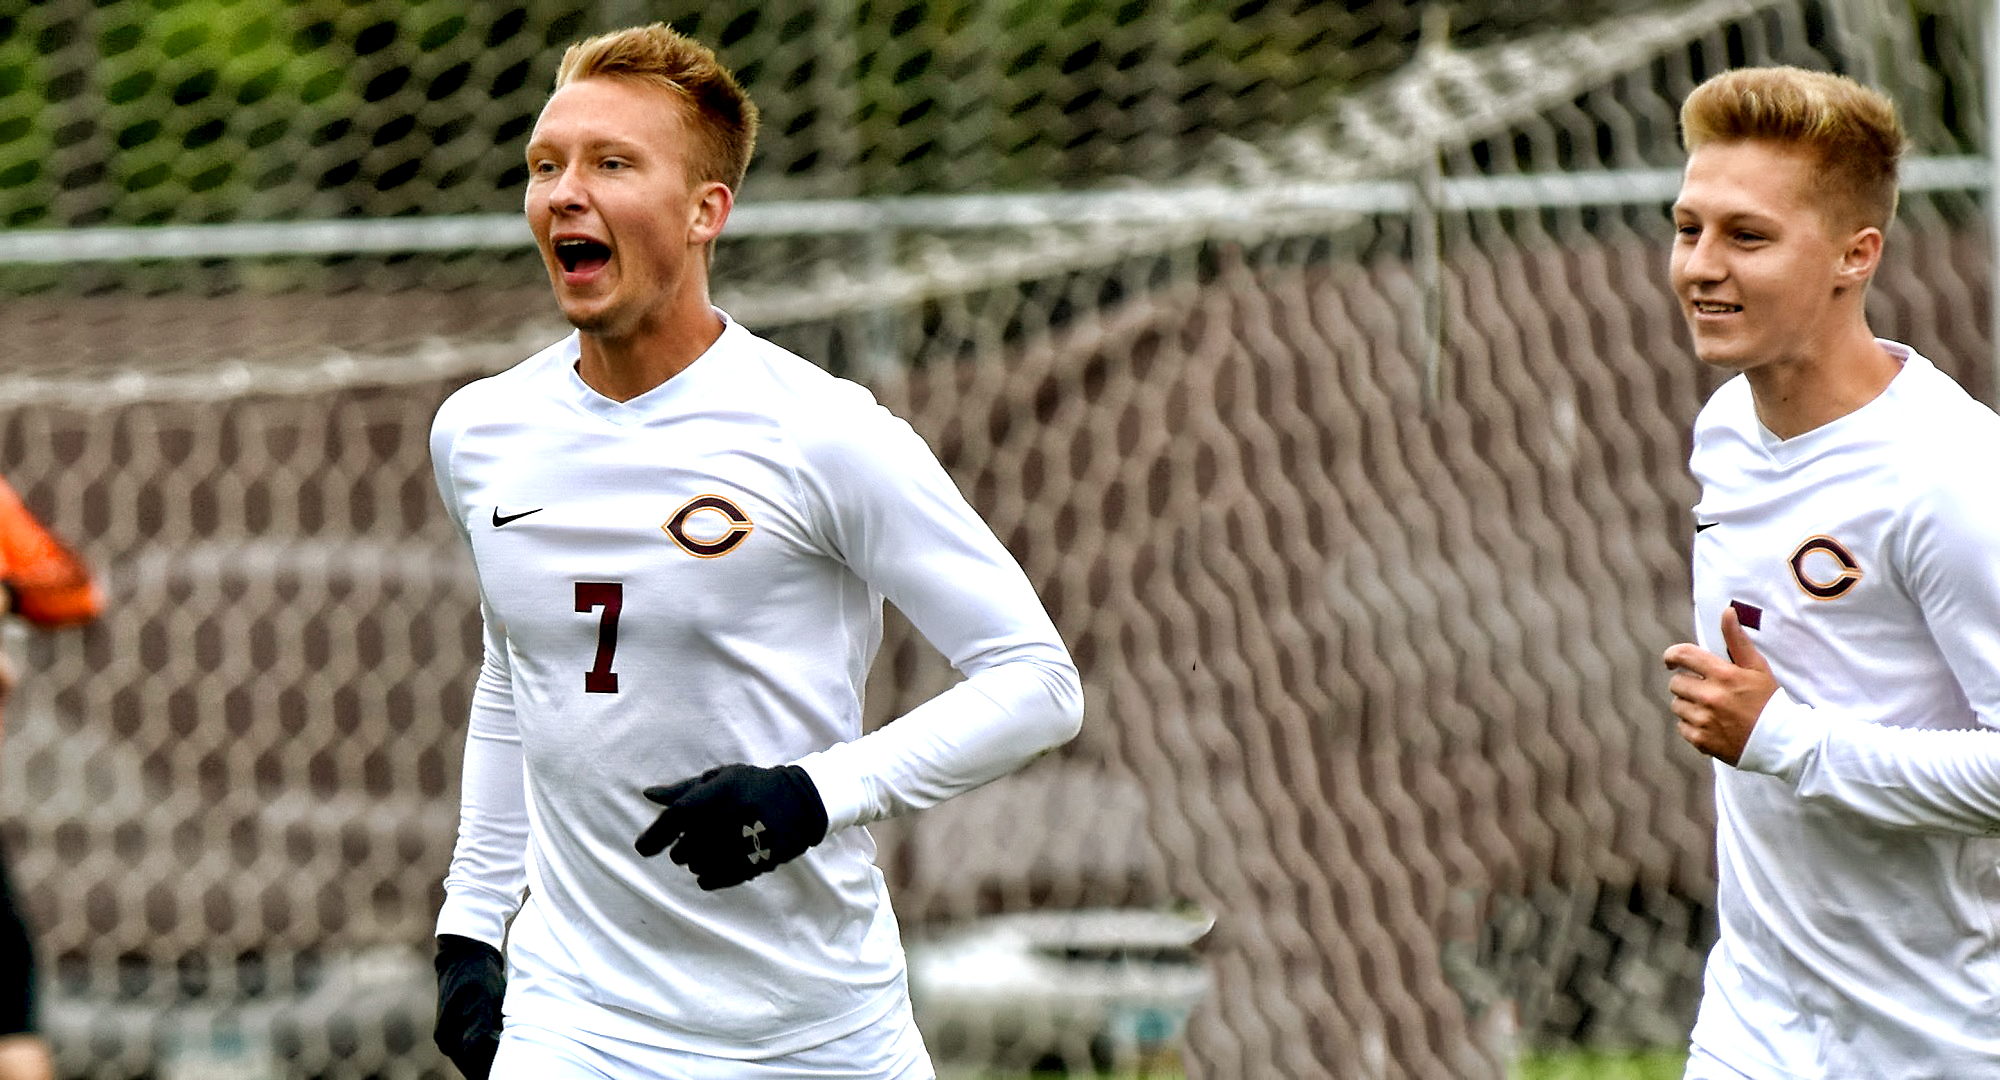 Sam Gess (L) finished off his 2-hat trick weekend by scoring all three goals in the Cobbers' 3-2 OT win over Viterbo.